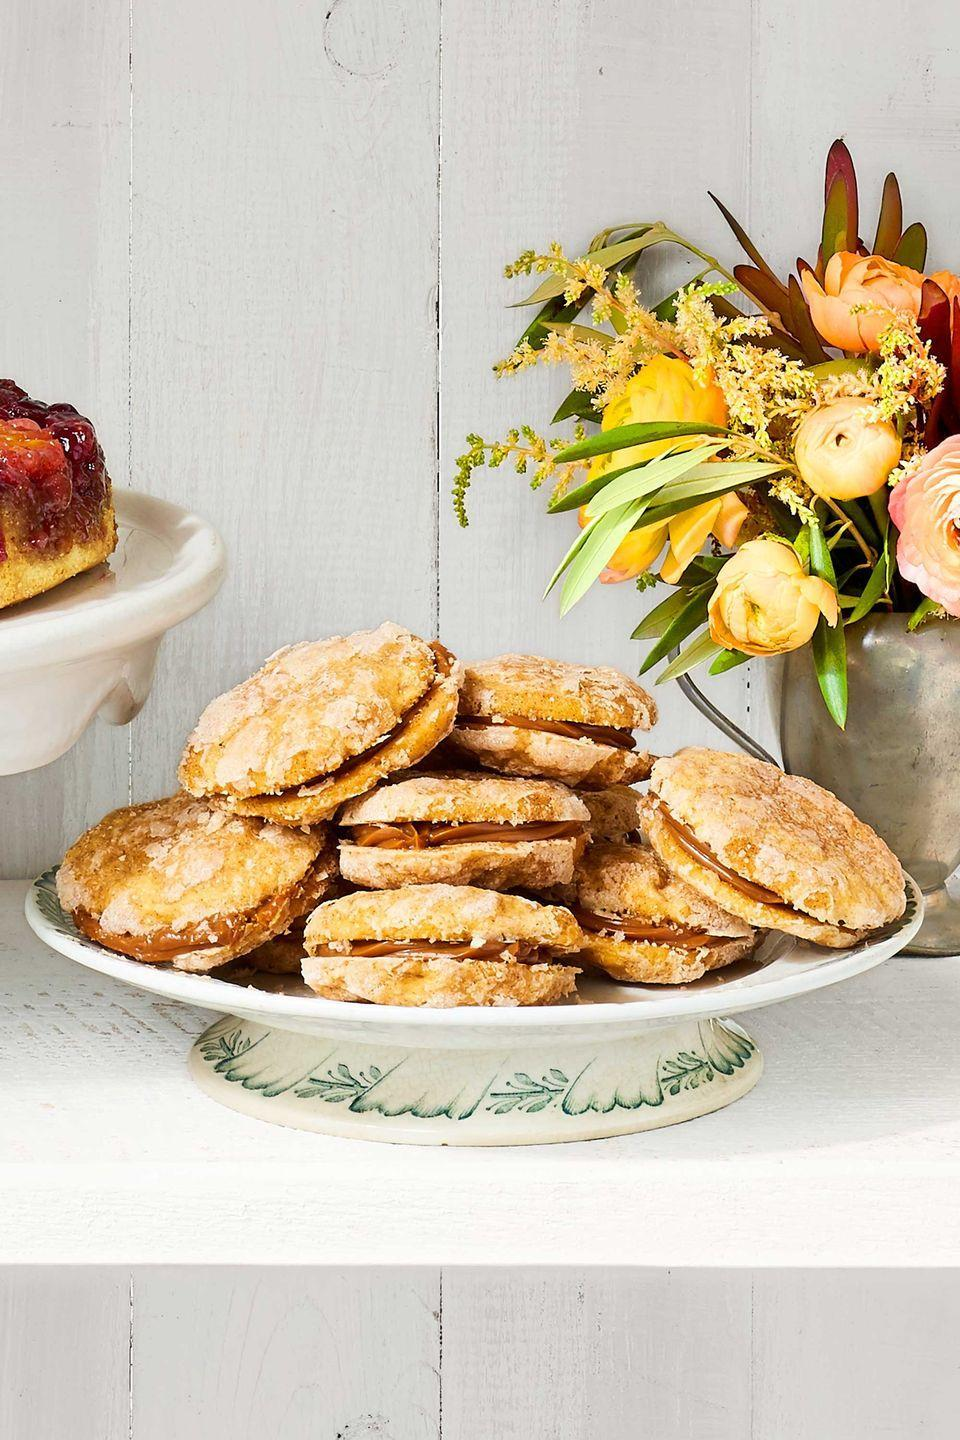 """<p>Satisfy your sweet tooth with these caramel-filled sandwich cookies.</p><p><strong><a href=""""https://www.countryliving.com/food-drinks/recipes/a40046/sweet-potato-snickerdoodles-recipe/"""" rel=""""nofollow noopener"""" target=""""_blank"""" data-ylk=""""slk:Get the recipe"""" class=""""link rapid-noclick-resp"""">Get the recipe</a>.</strong></p>"""